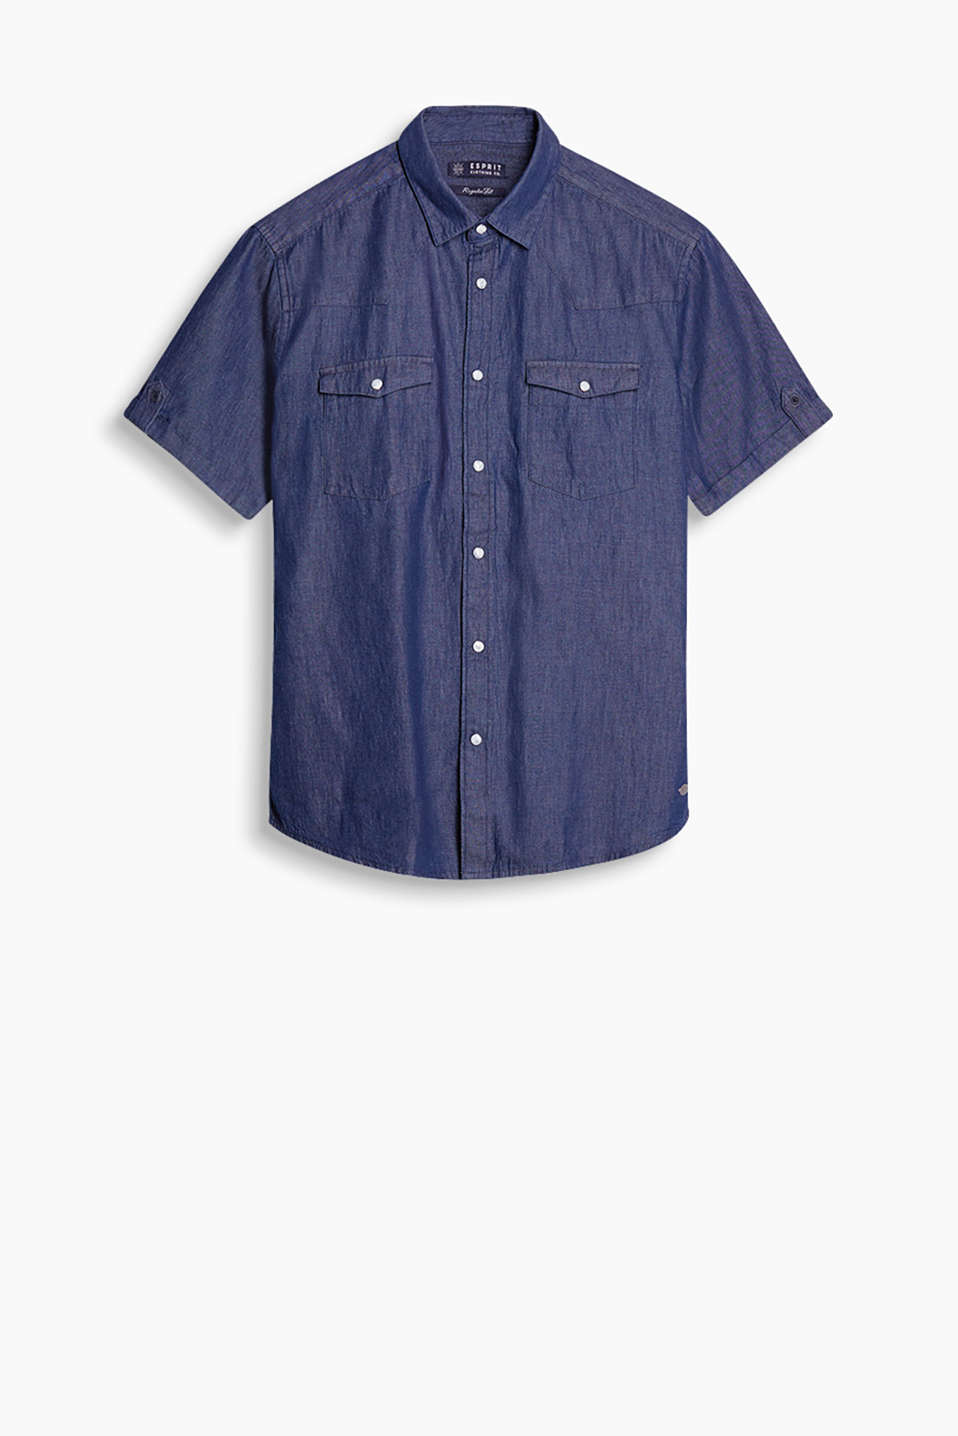 Shirt with breast pockets, press studs and an iridescent denim finish